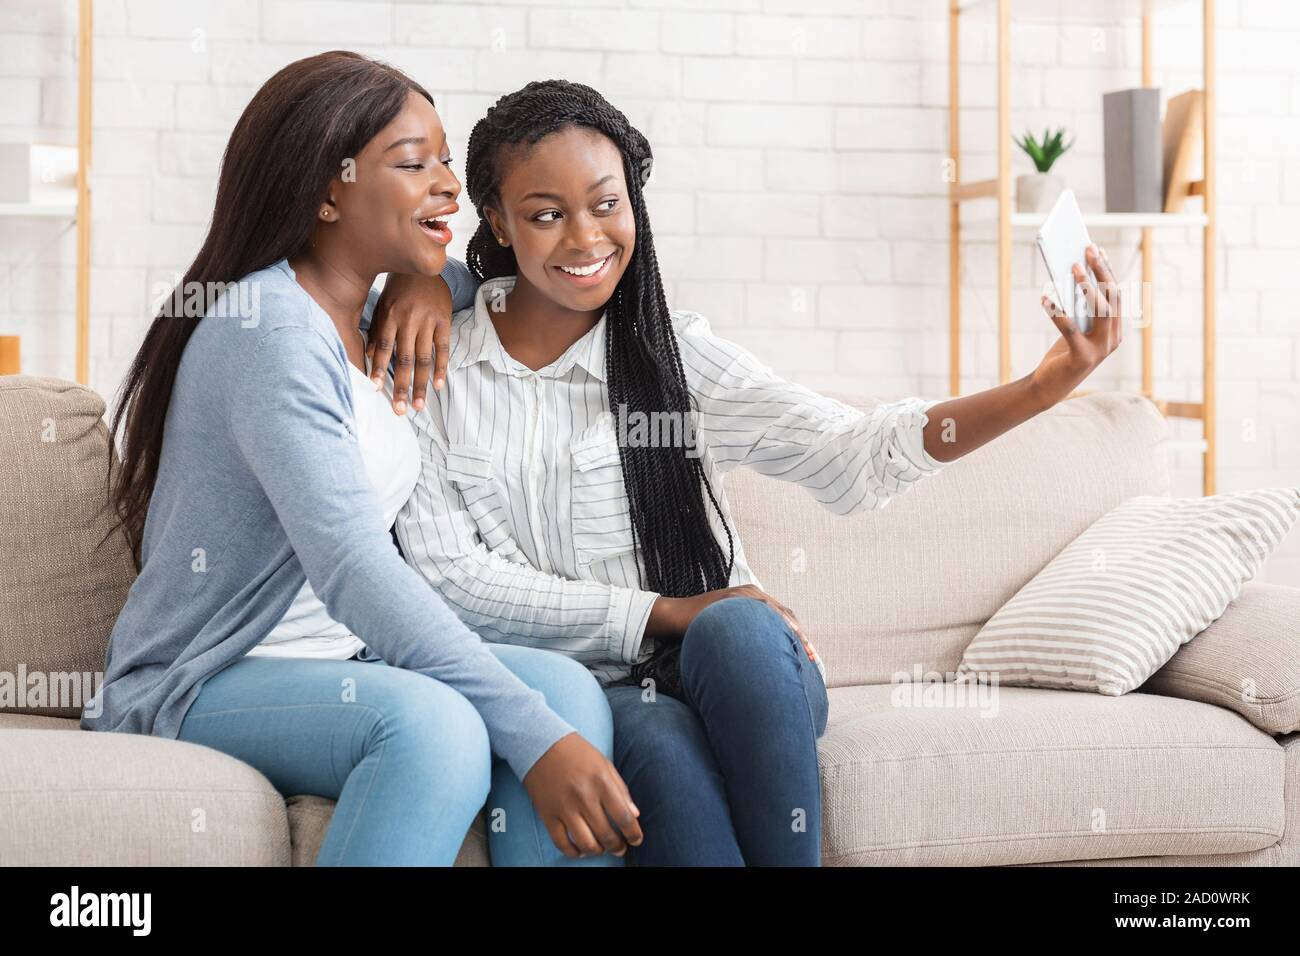 Tremendous Cheerful Black Girls Taking Selfie While Sitting On Couch At Home Natural Hairstyles Runnerswayorg